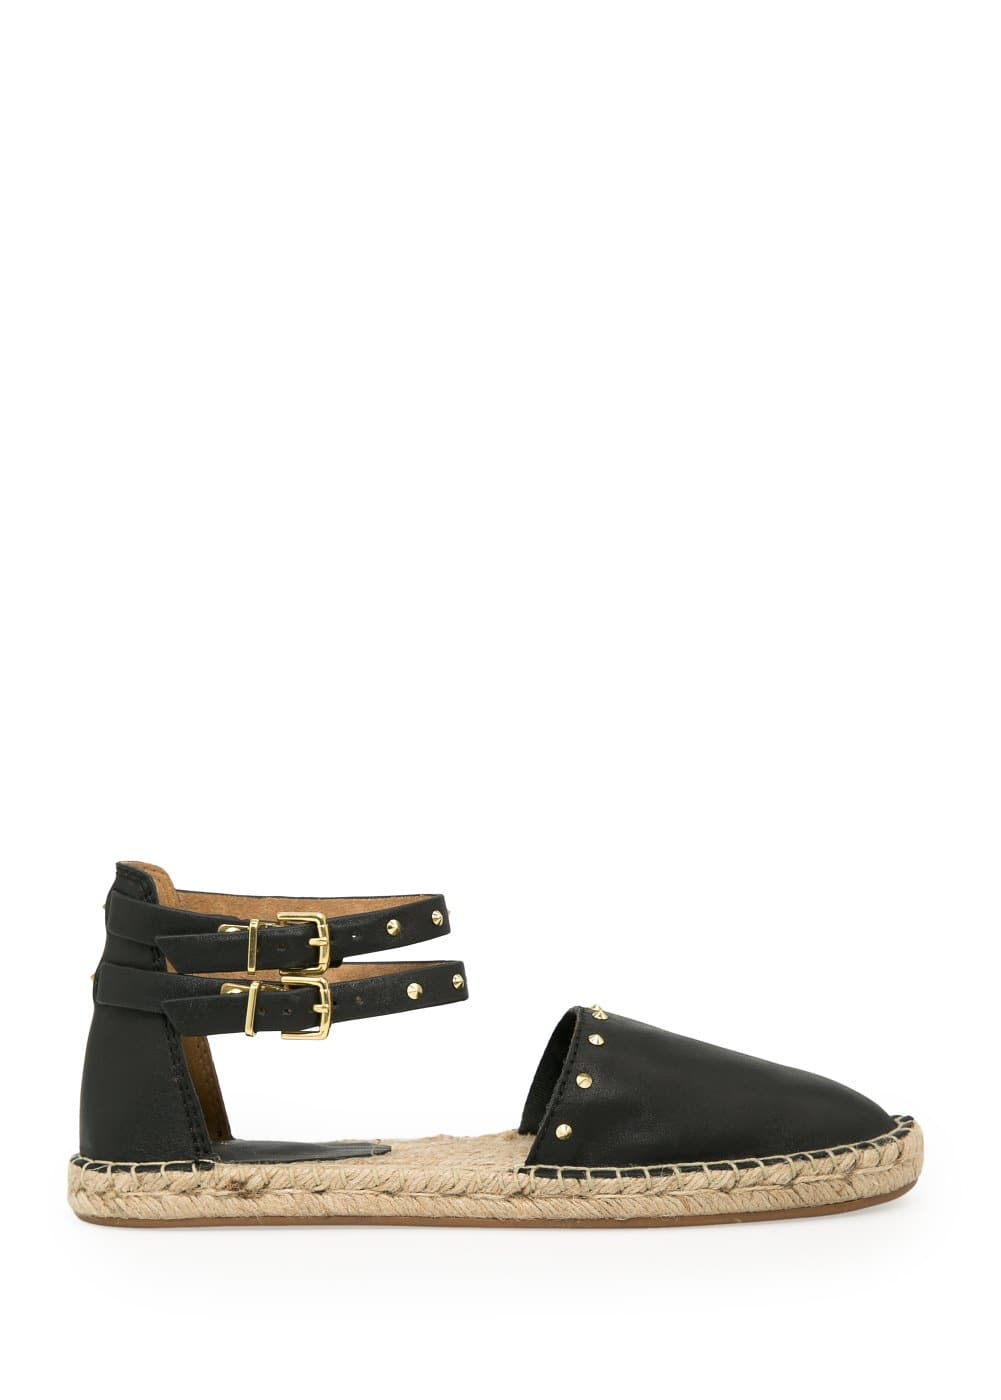 Spike leather espadrilles